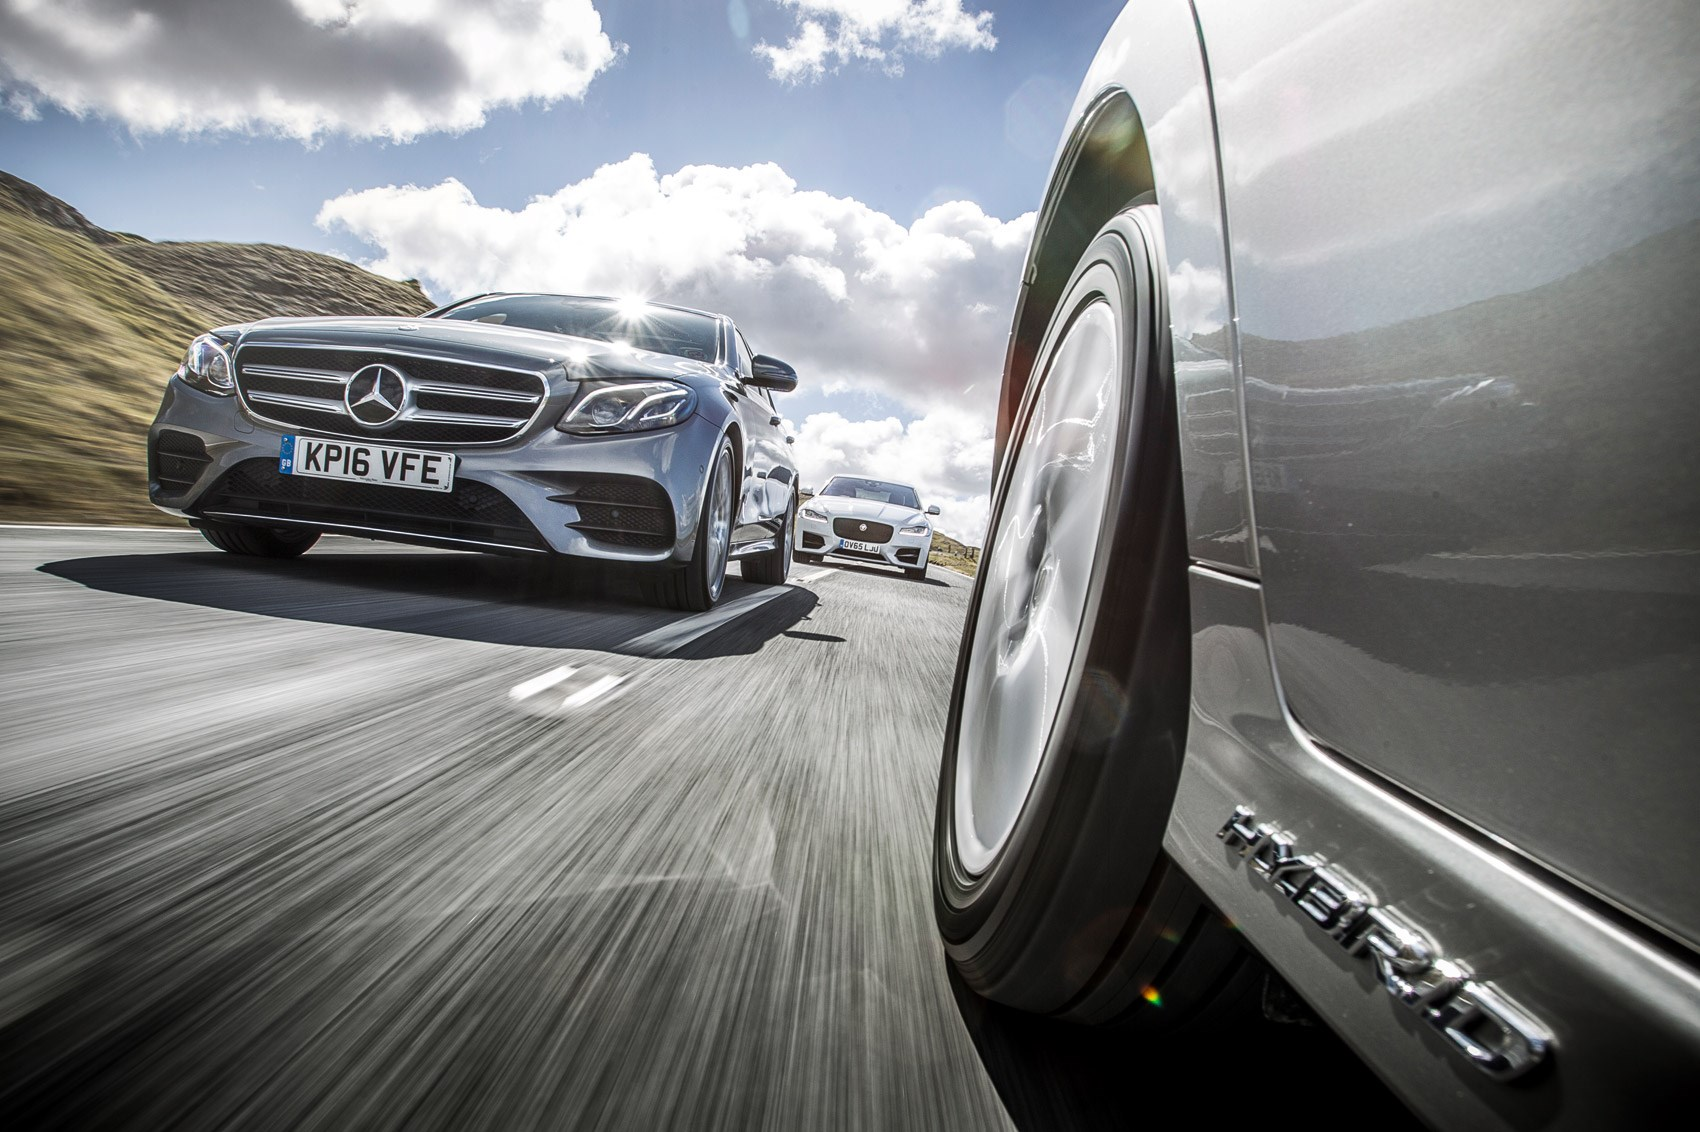 Giant Test: Mercedes Benz E Class Vs Jaguar XF Vs Lexus GS Review